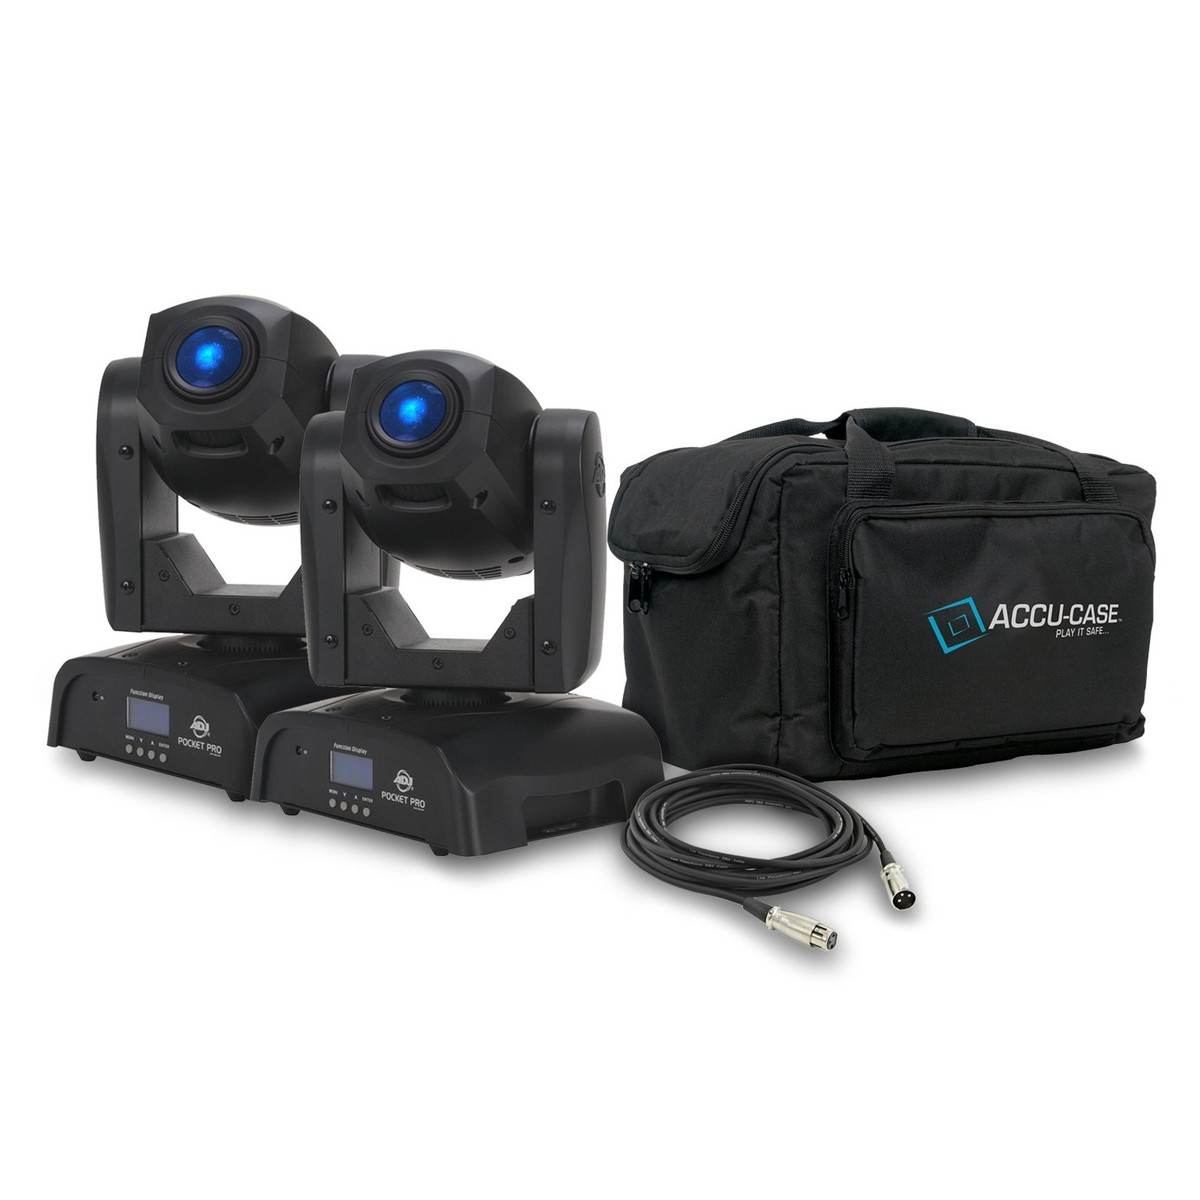 dea6aa69bd99d ADJ Pocket Pro Spot Moving Head, Pair with Free Bag and Cables ...